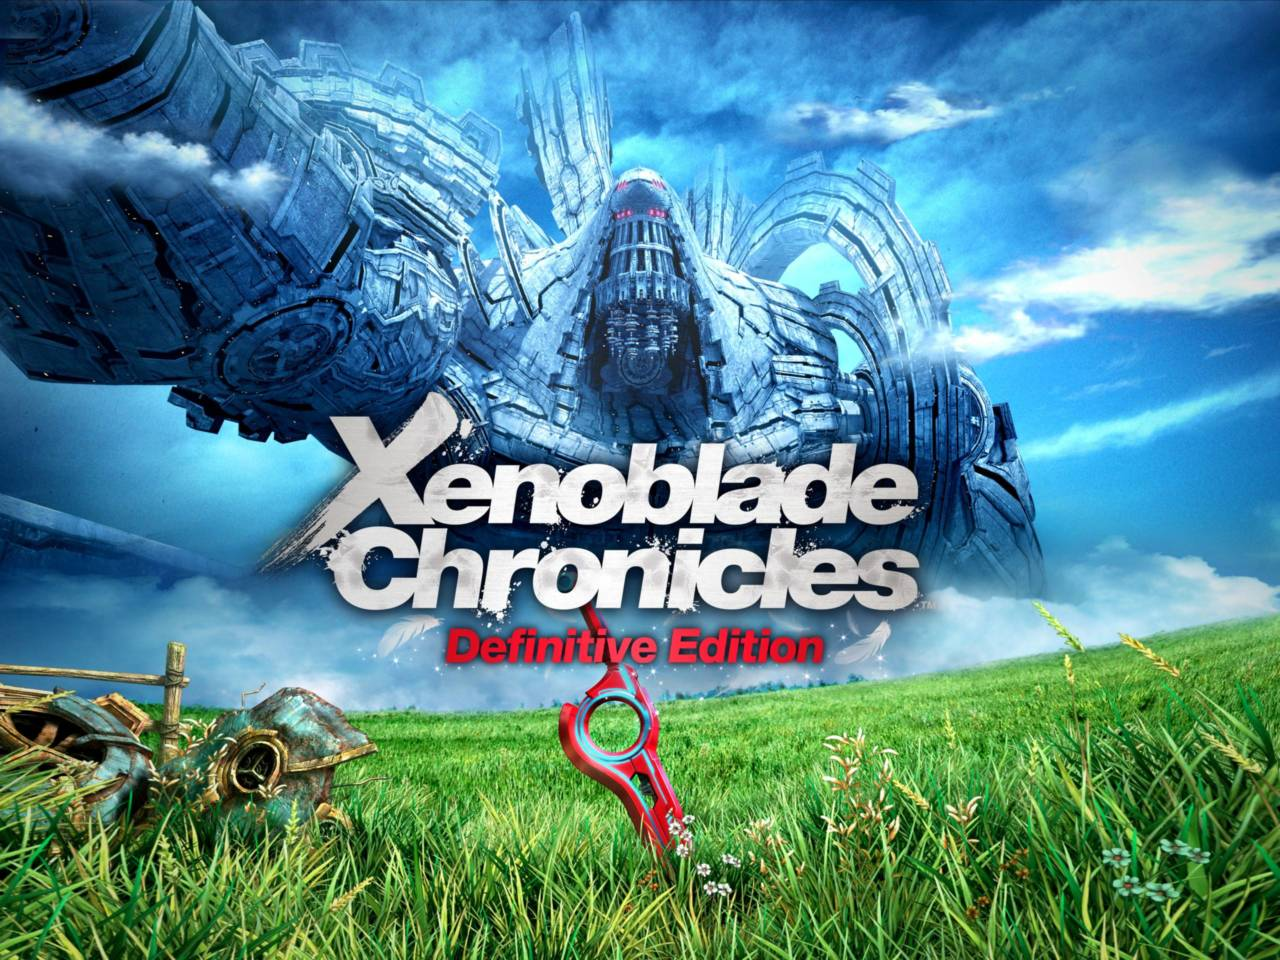 Xenoblade Chronicles Definitive Edition 2020 03 26 20 016 scaled e1585236563941